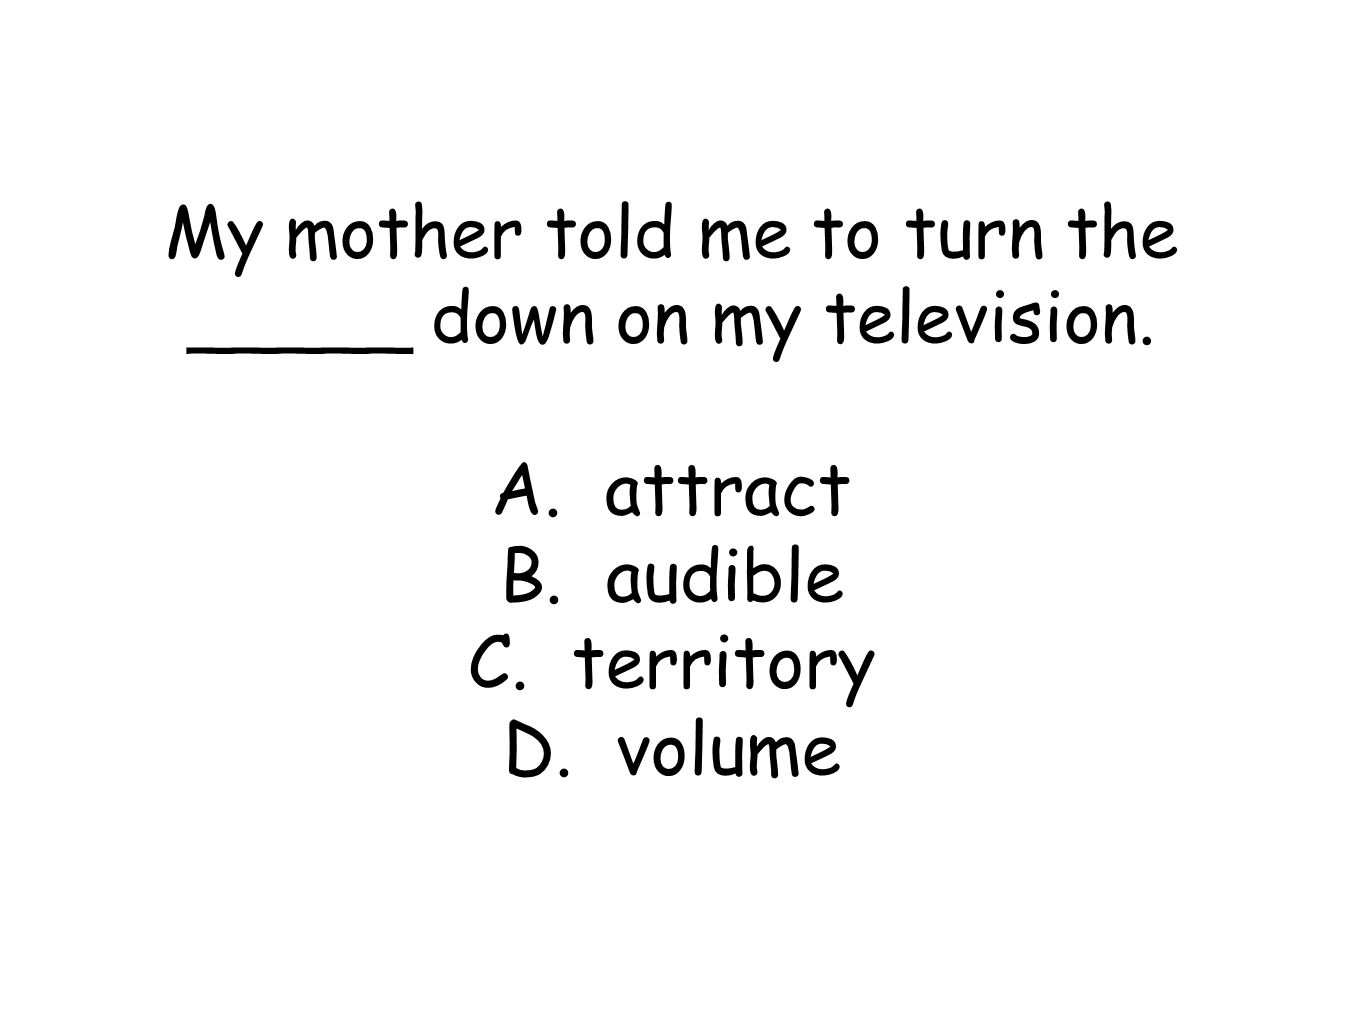 My mother told me to turn the _____ down on my television.